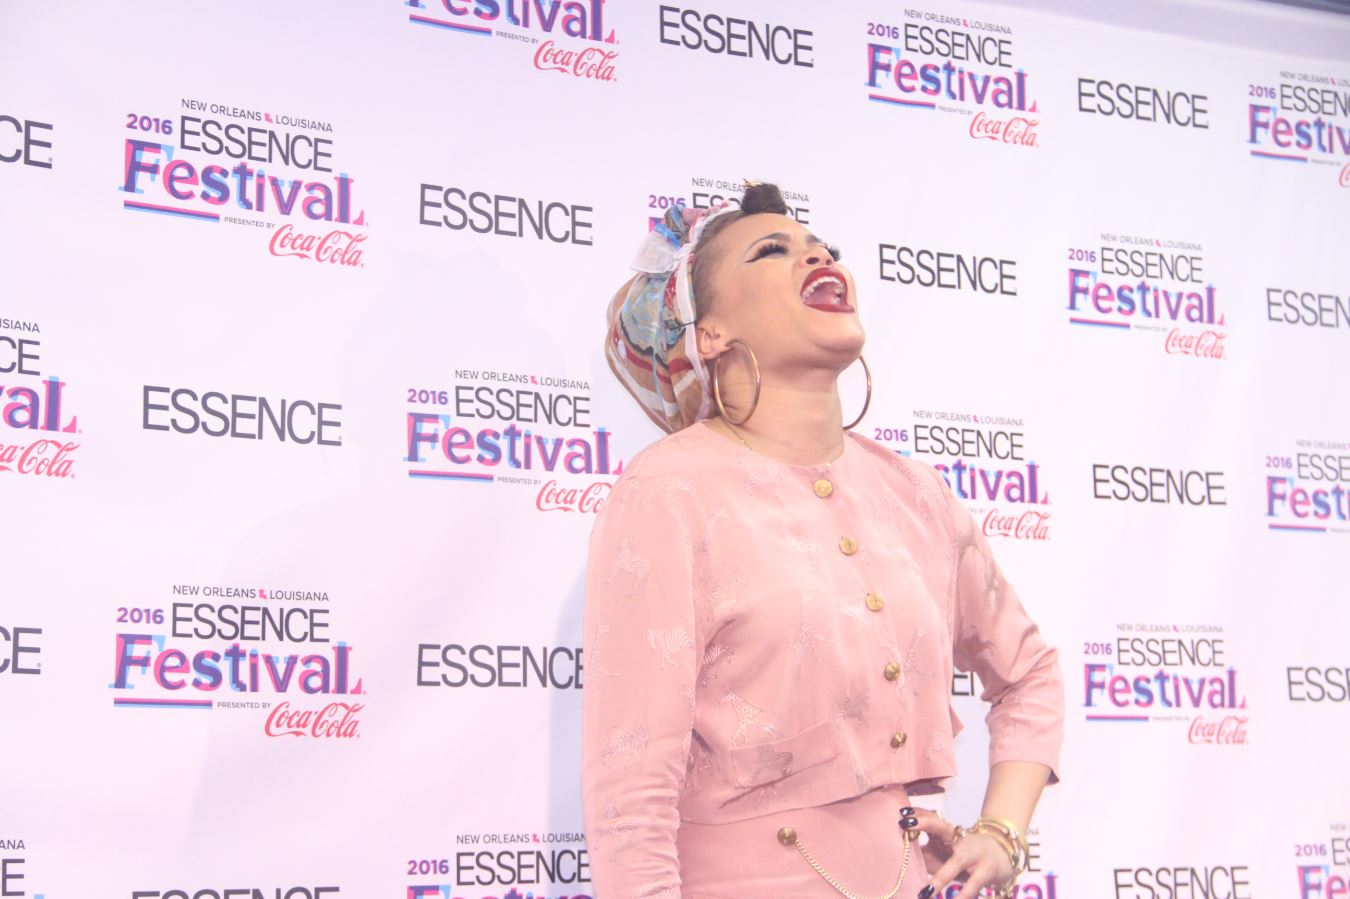 Andra Day at Essence Fest 2016 -Photo credit ConnectingYOUto PR Firm